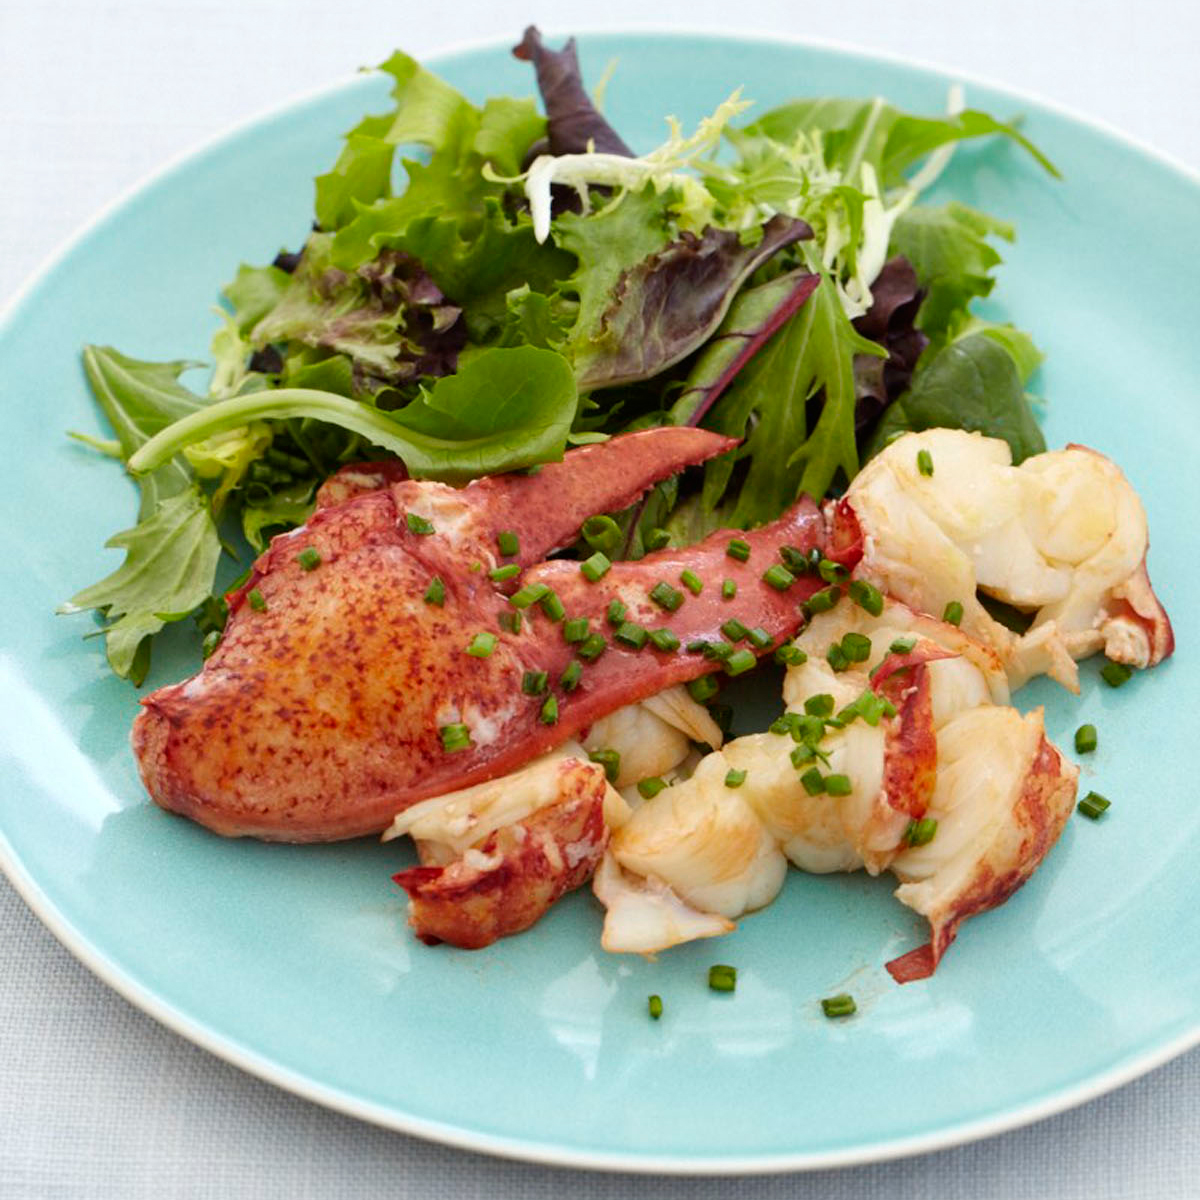 201004-r-lobster-salad.jpg